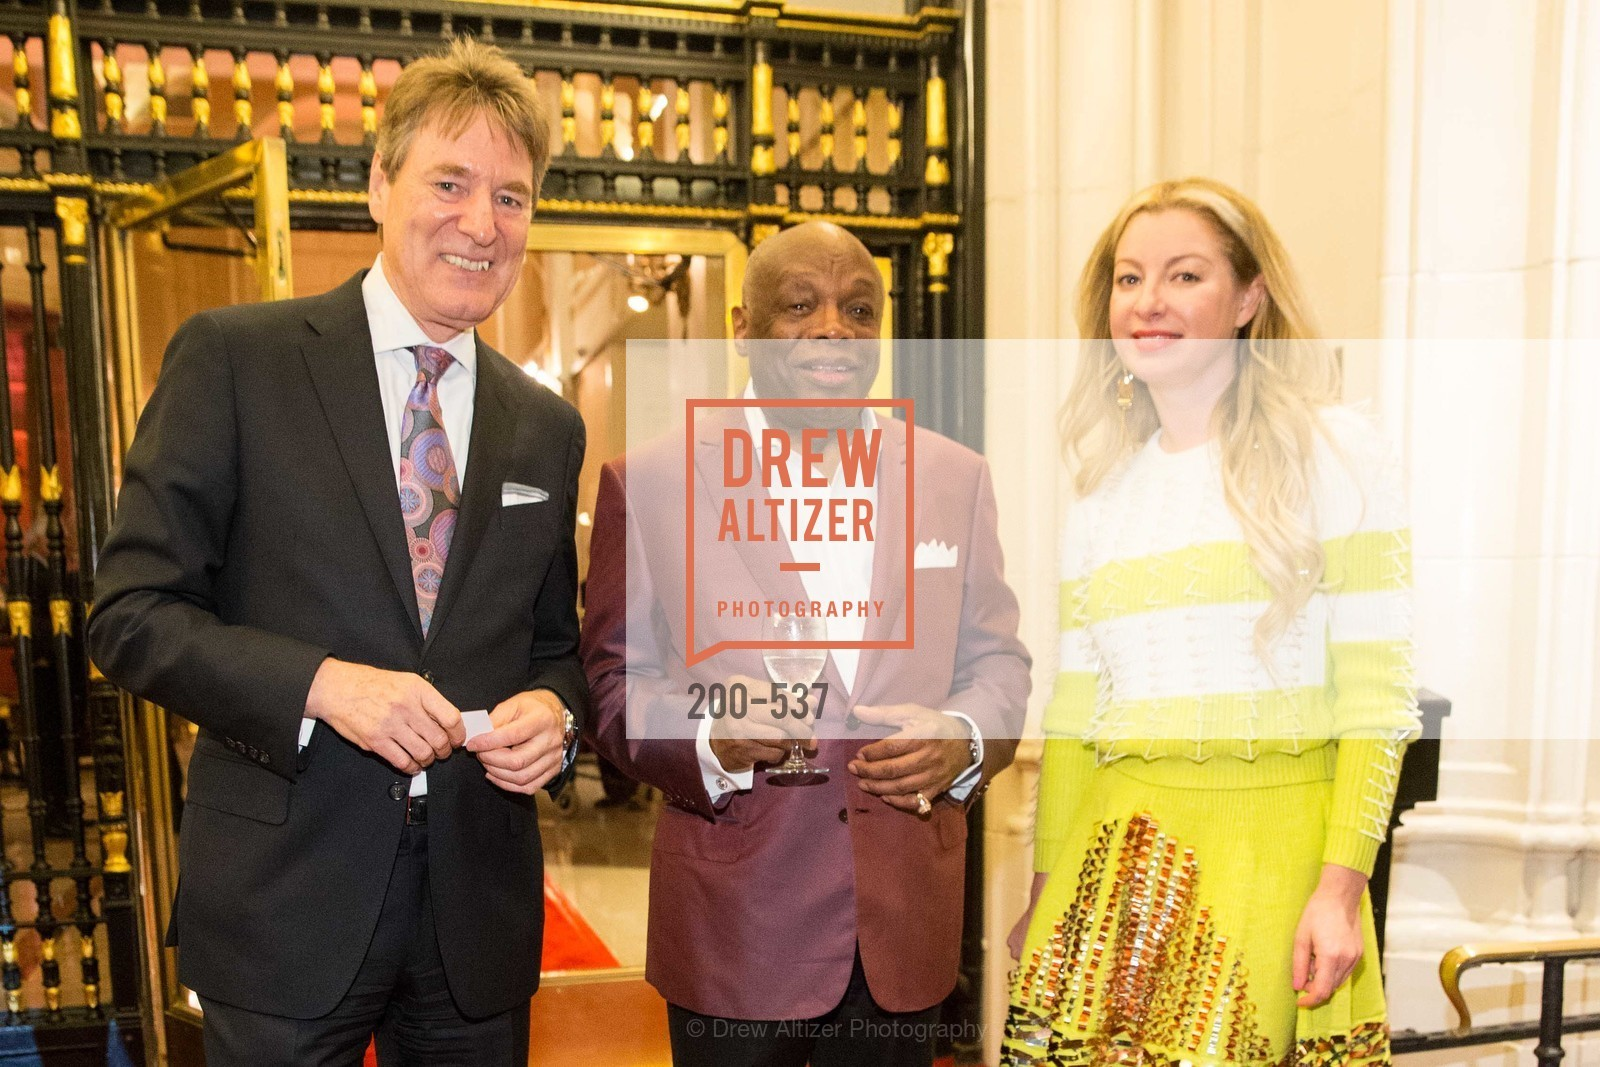 Peter Koehler, Willie Brown, Sonya Molodetskaya, TOP OF THE MARK'S 75TH Anniversary Party, US, November 7th, 2014,Drew Altizer, Drew Altizer Photography, full-service agency, private events, San Francisco photographer, photographer california